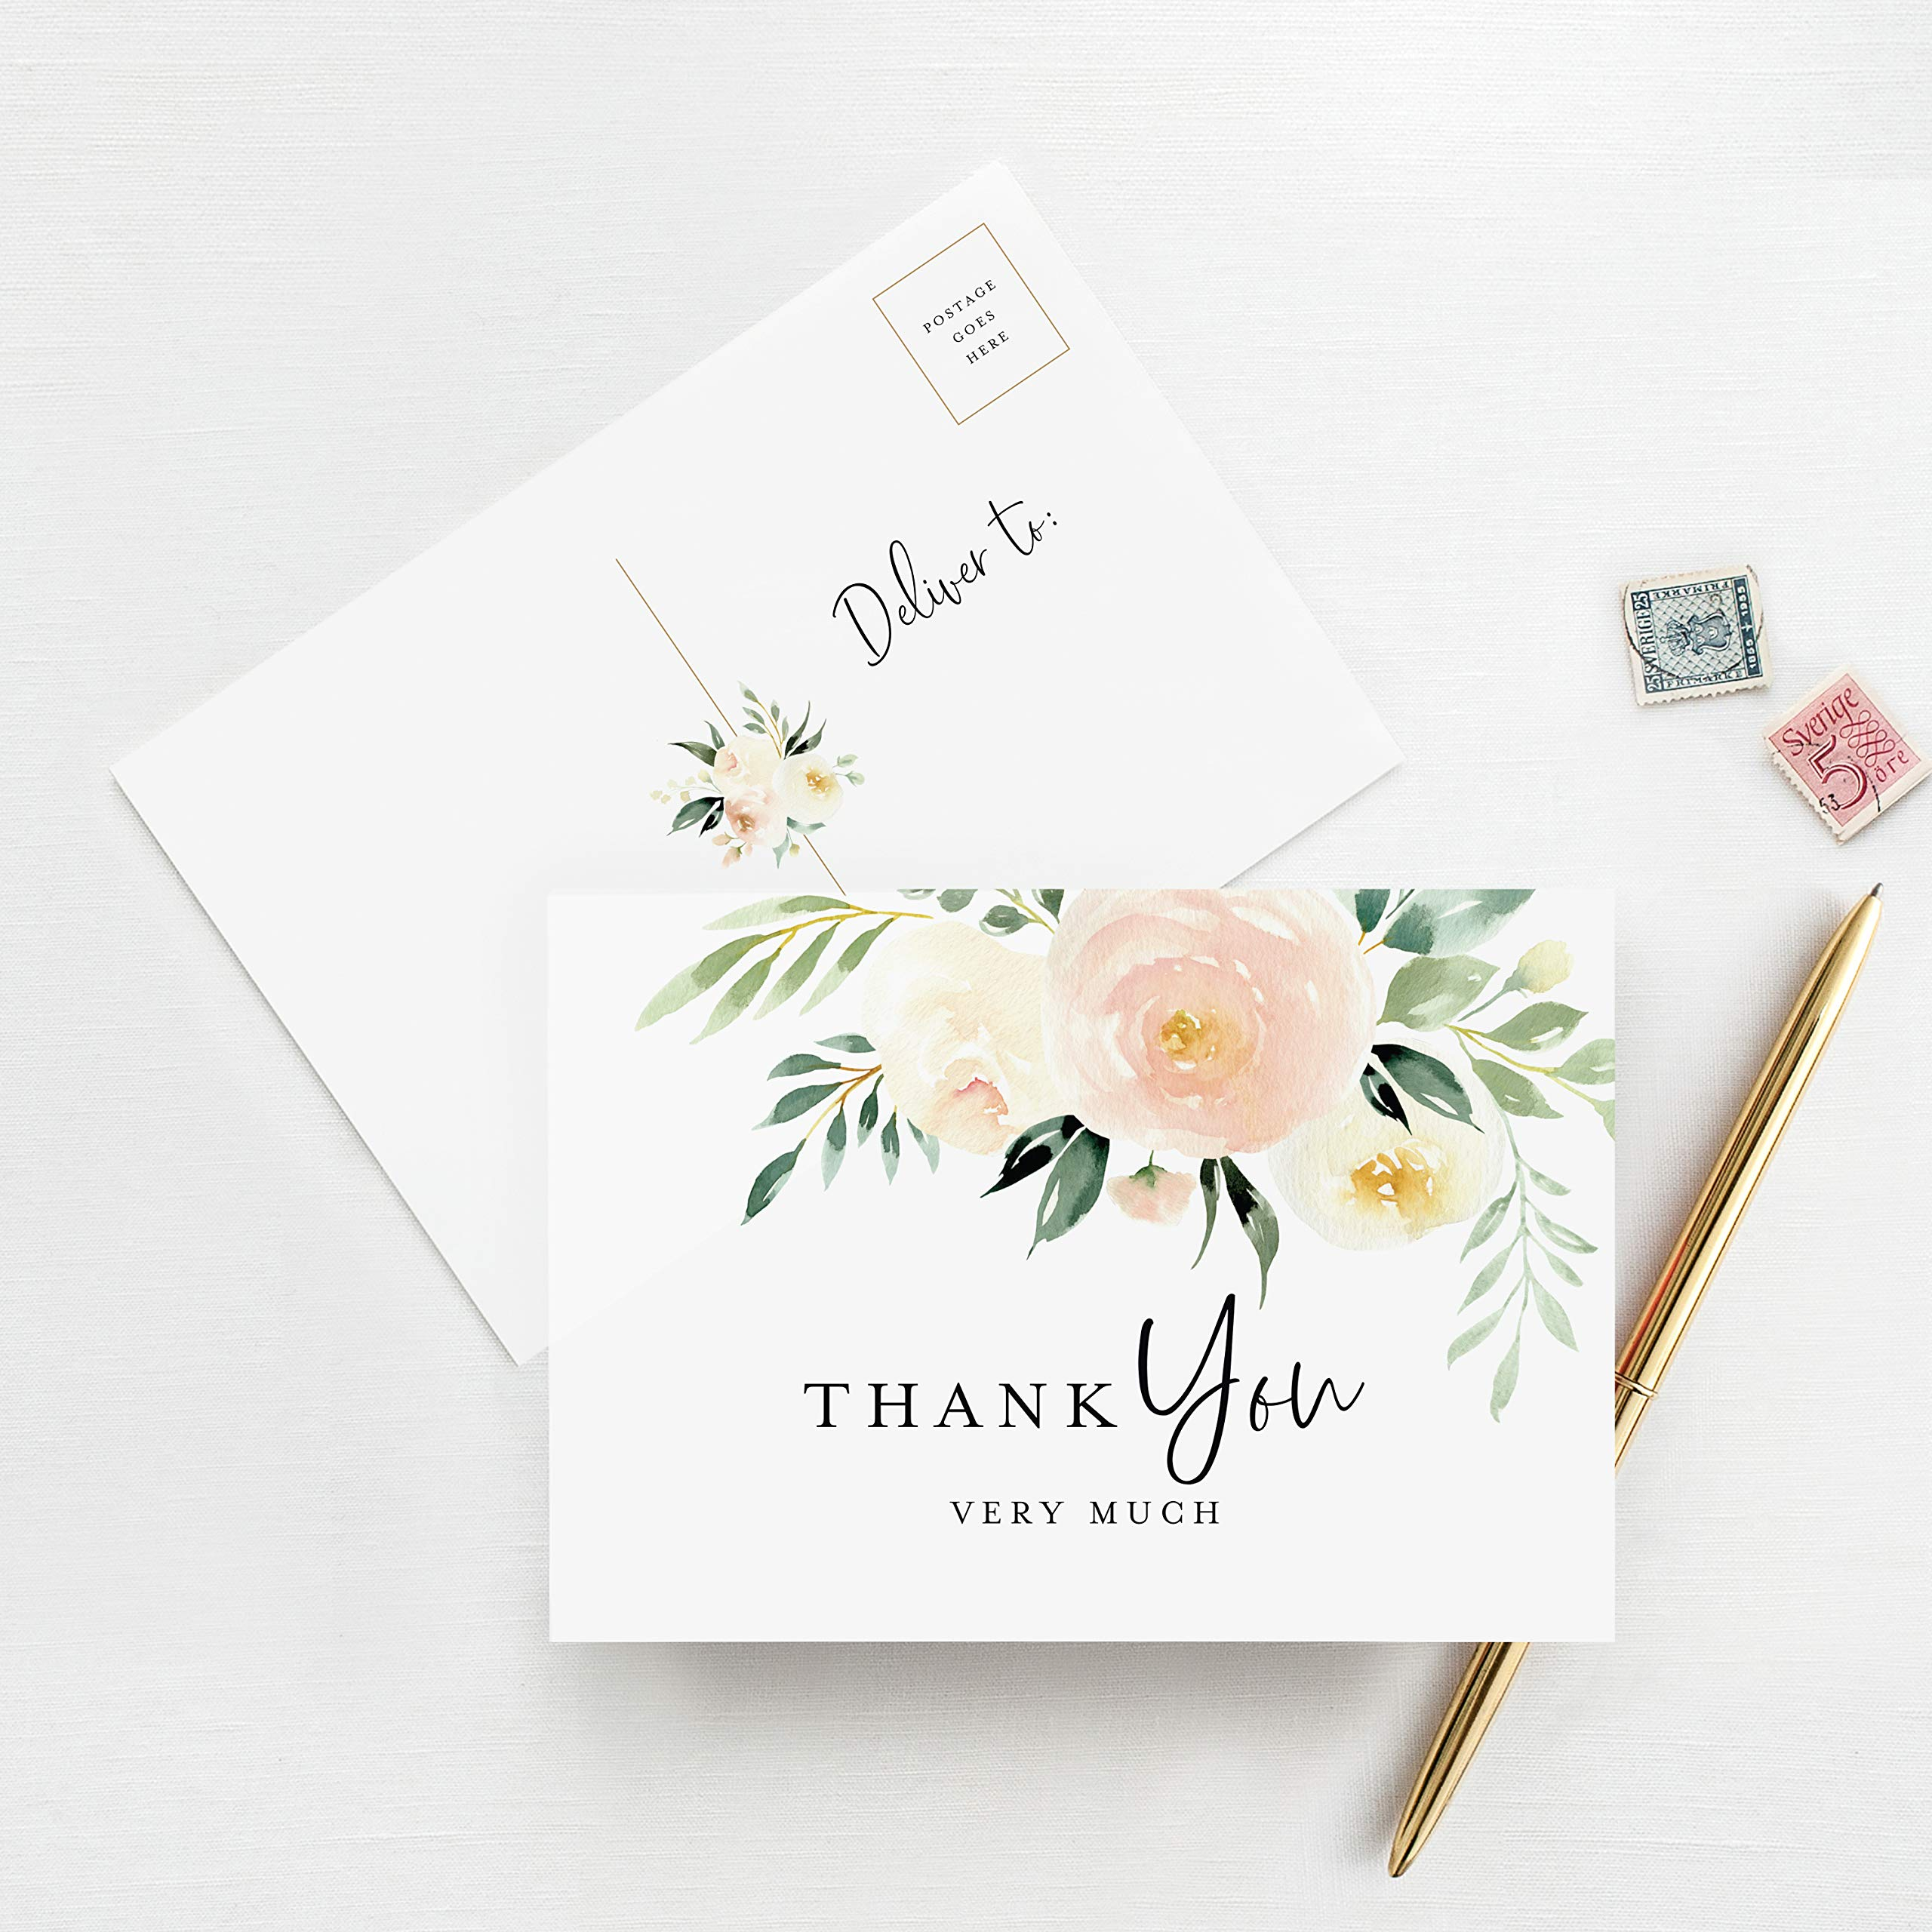 Bridal Party Thank You Cards Set of 10 Blush Floral Bridesmaid Thank You Cards